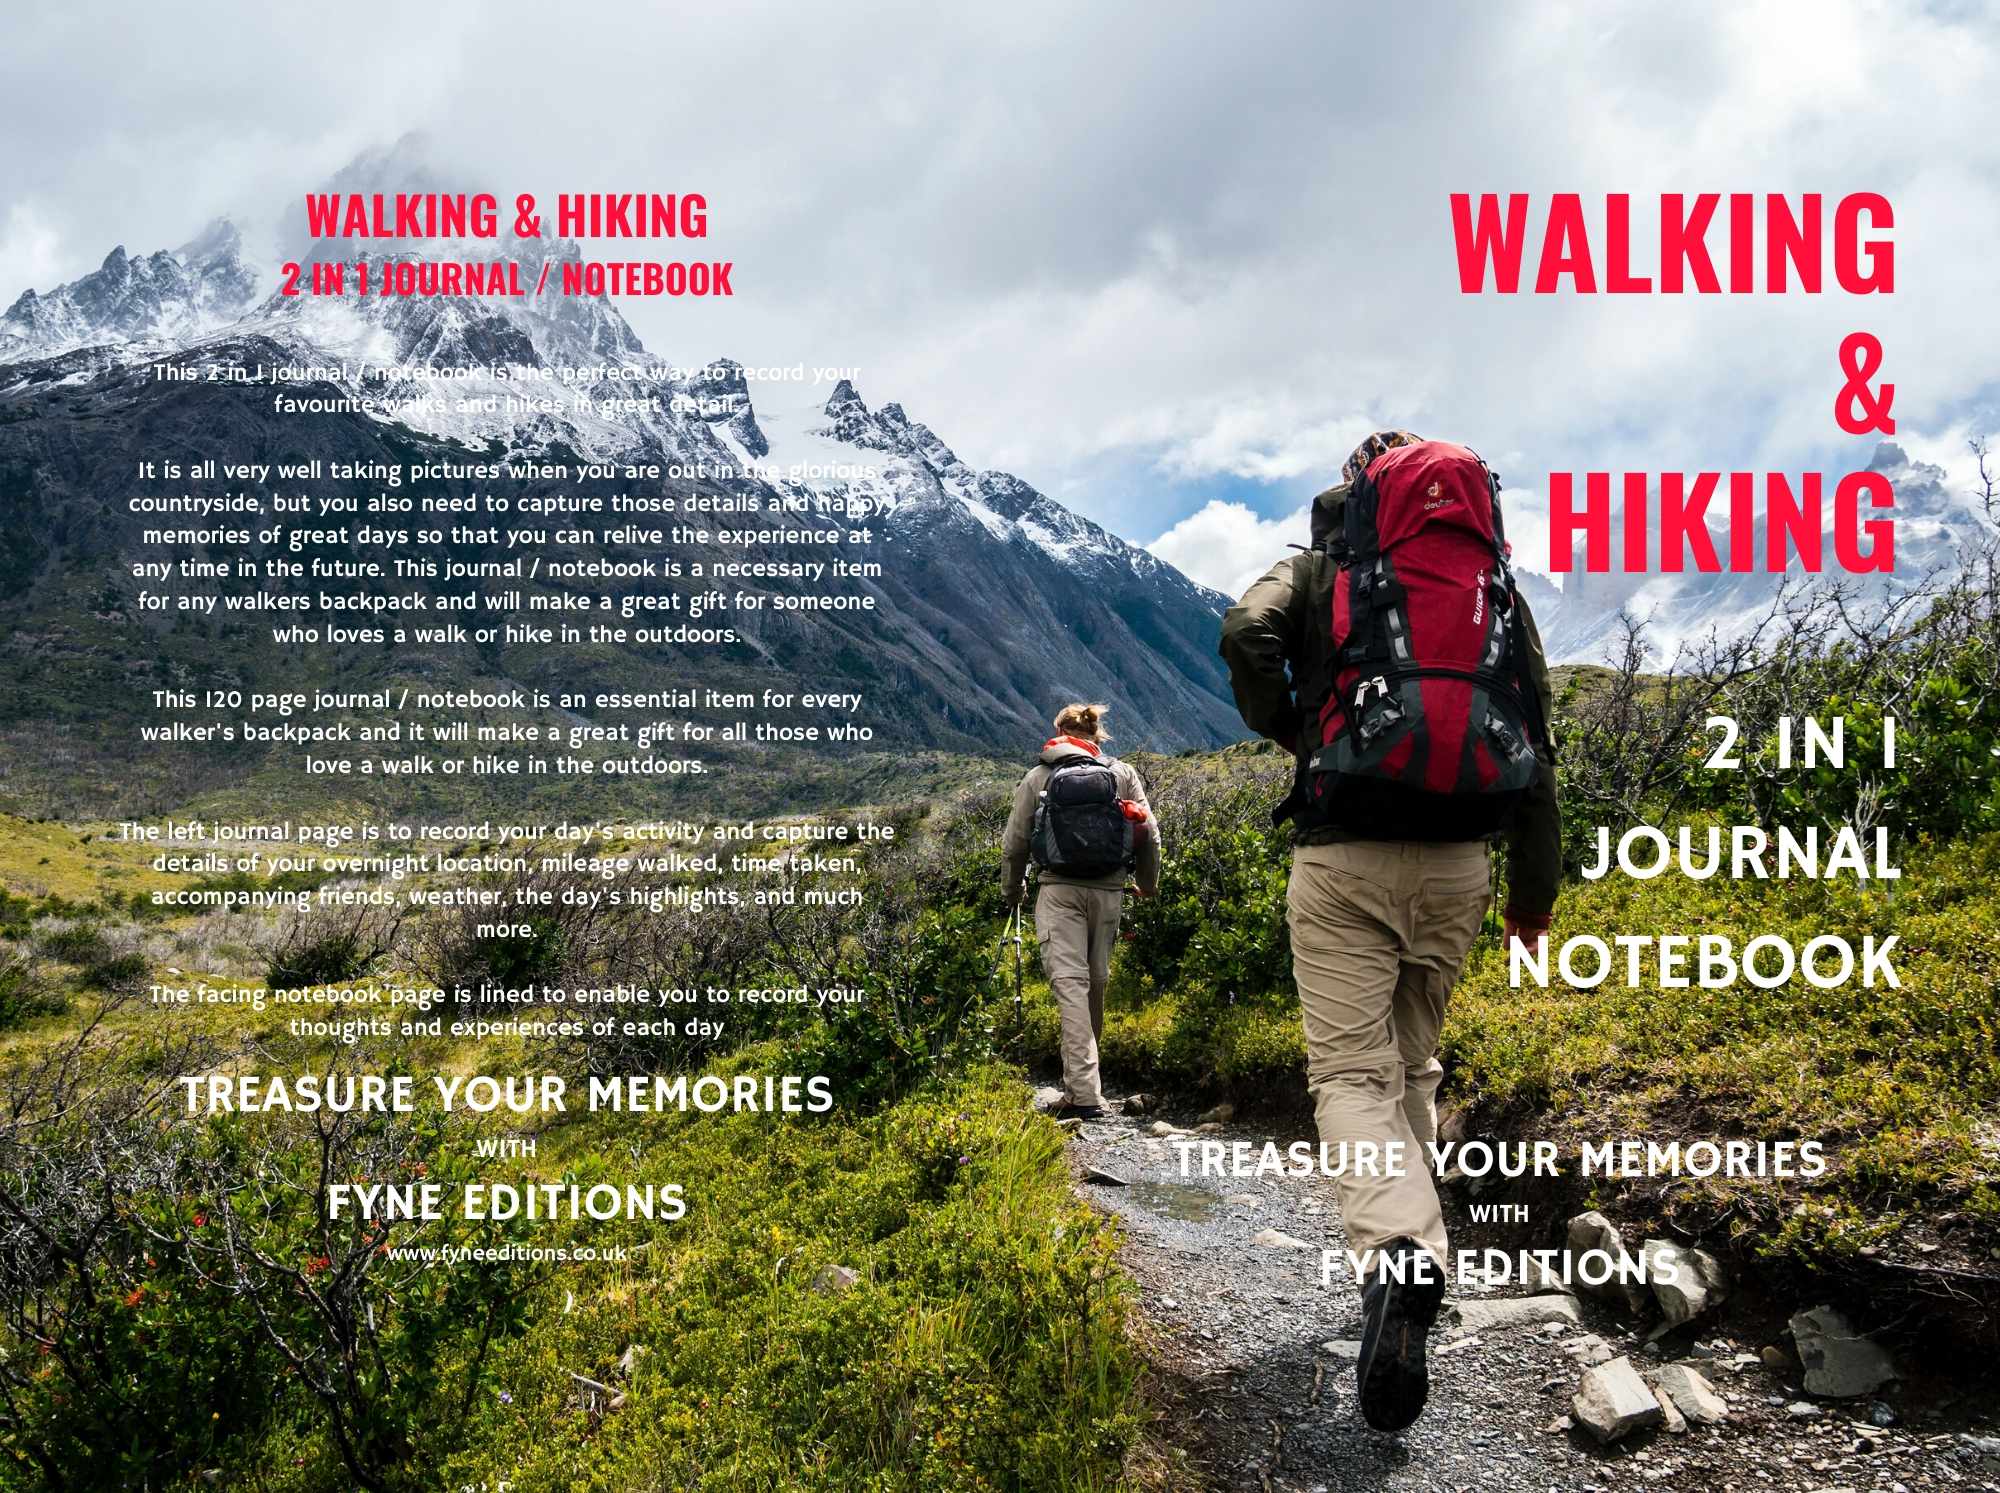 Walking & Hiking Journal & Notebook